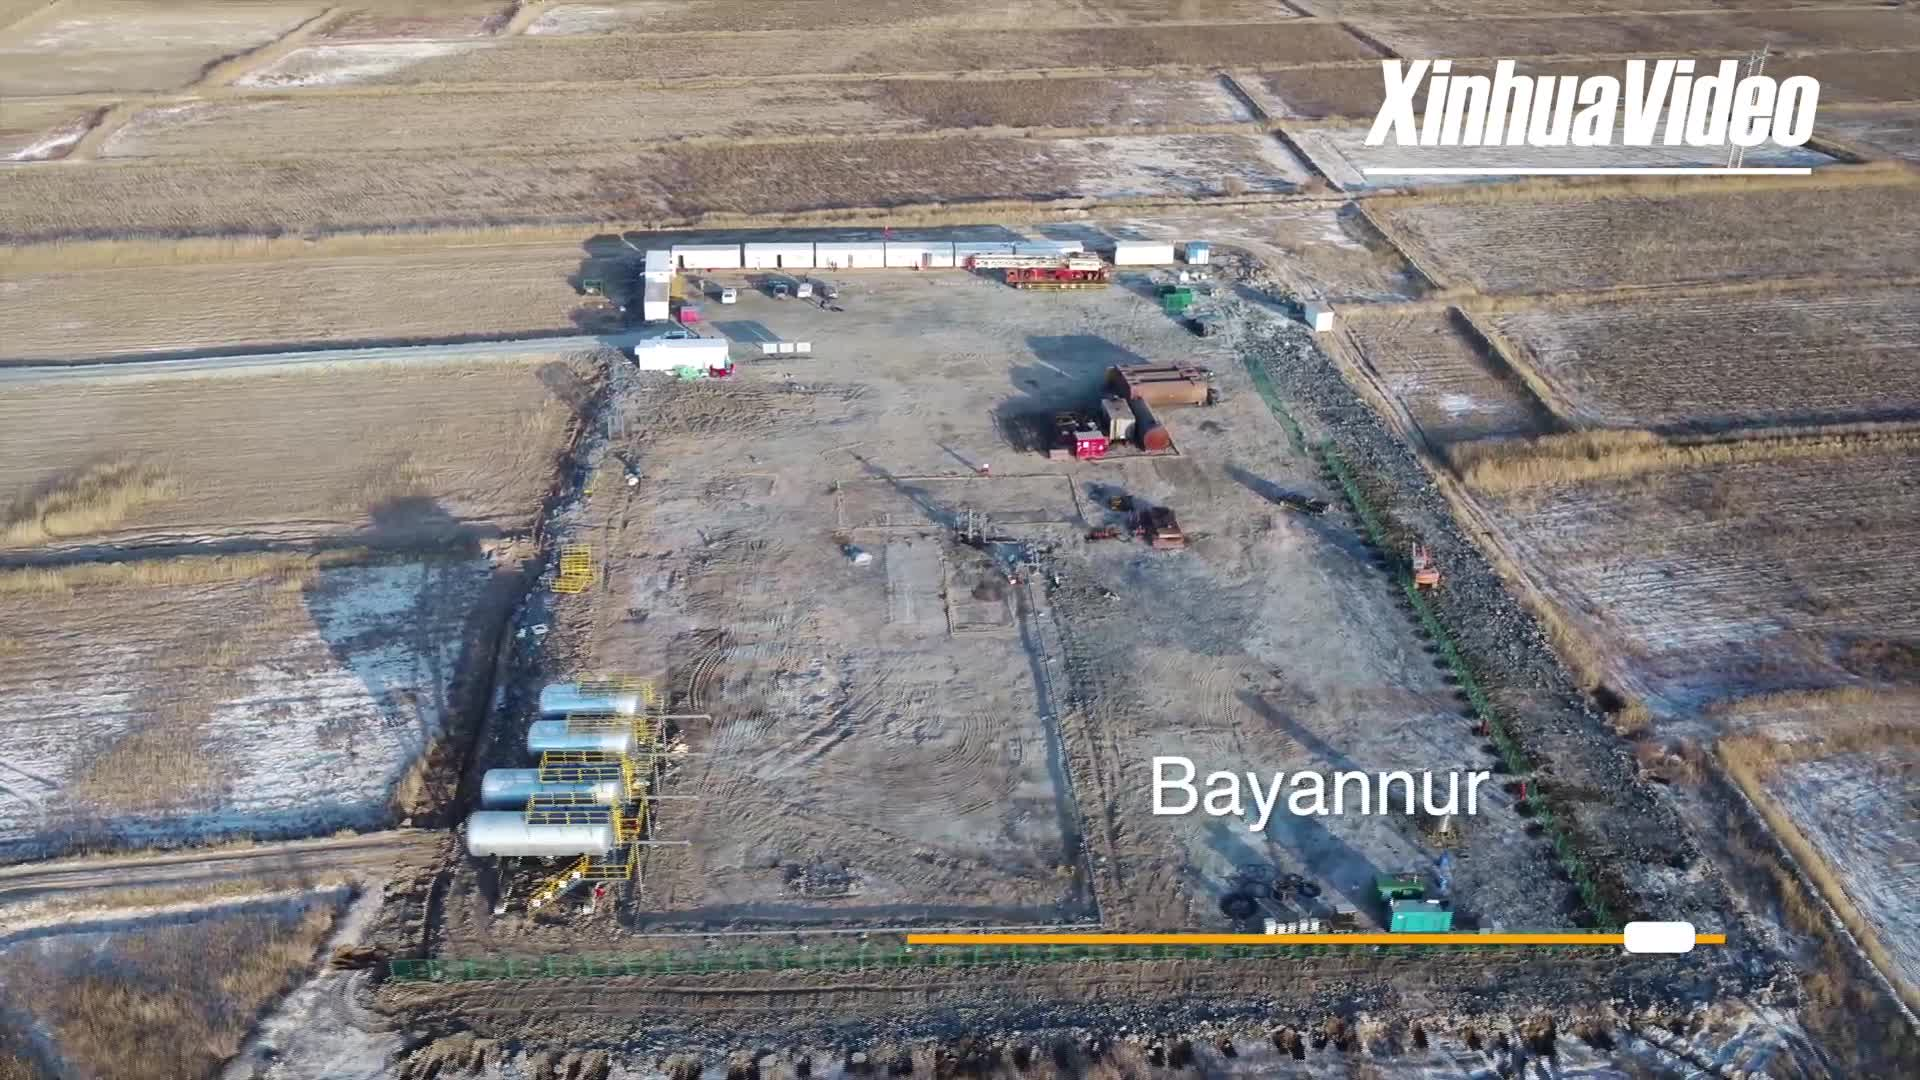 New high-production well found in N China